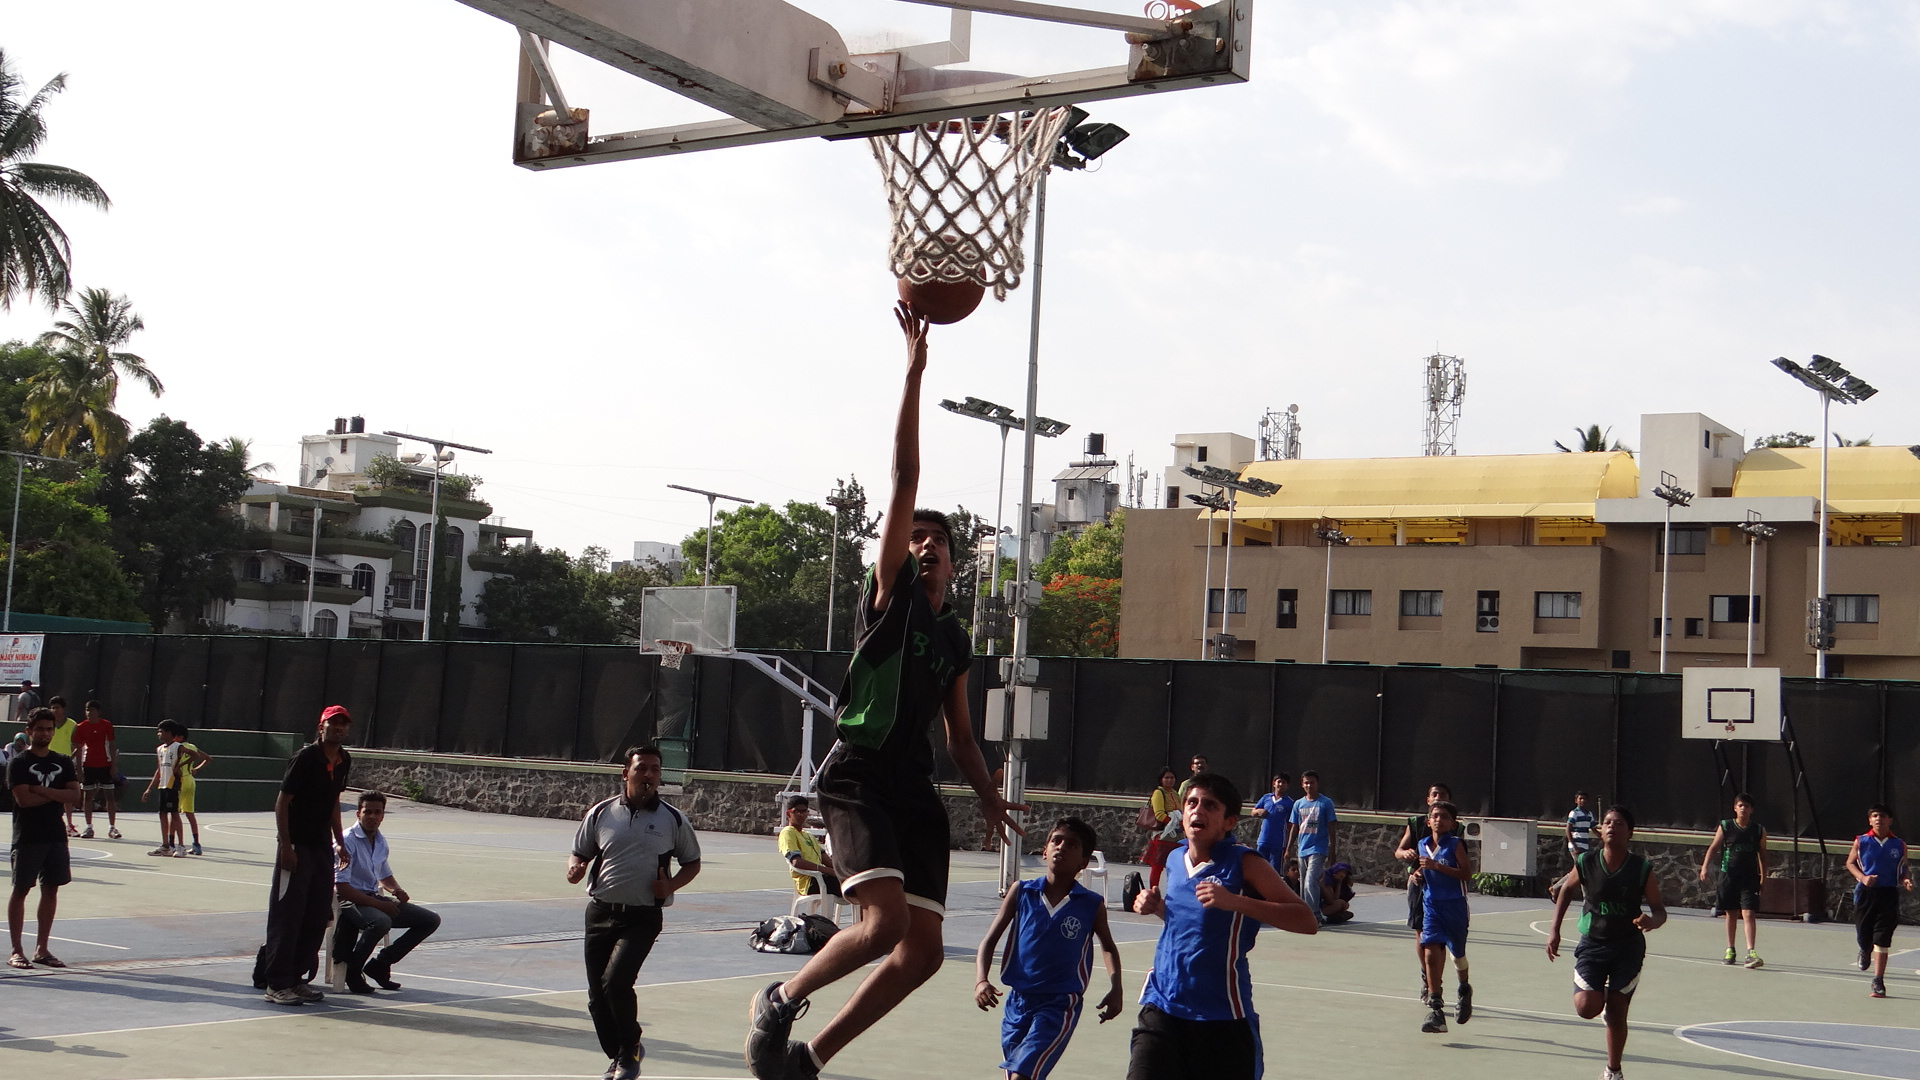 Boys match between Bharati Nivas Society (Black) and Kamal Nayan Bajaj (Blue).